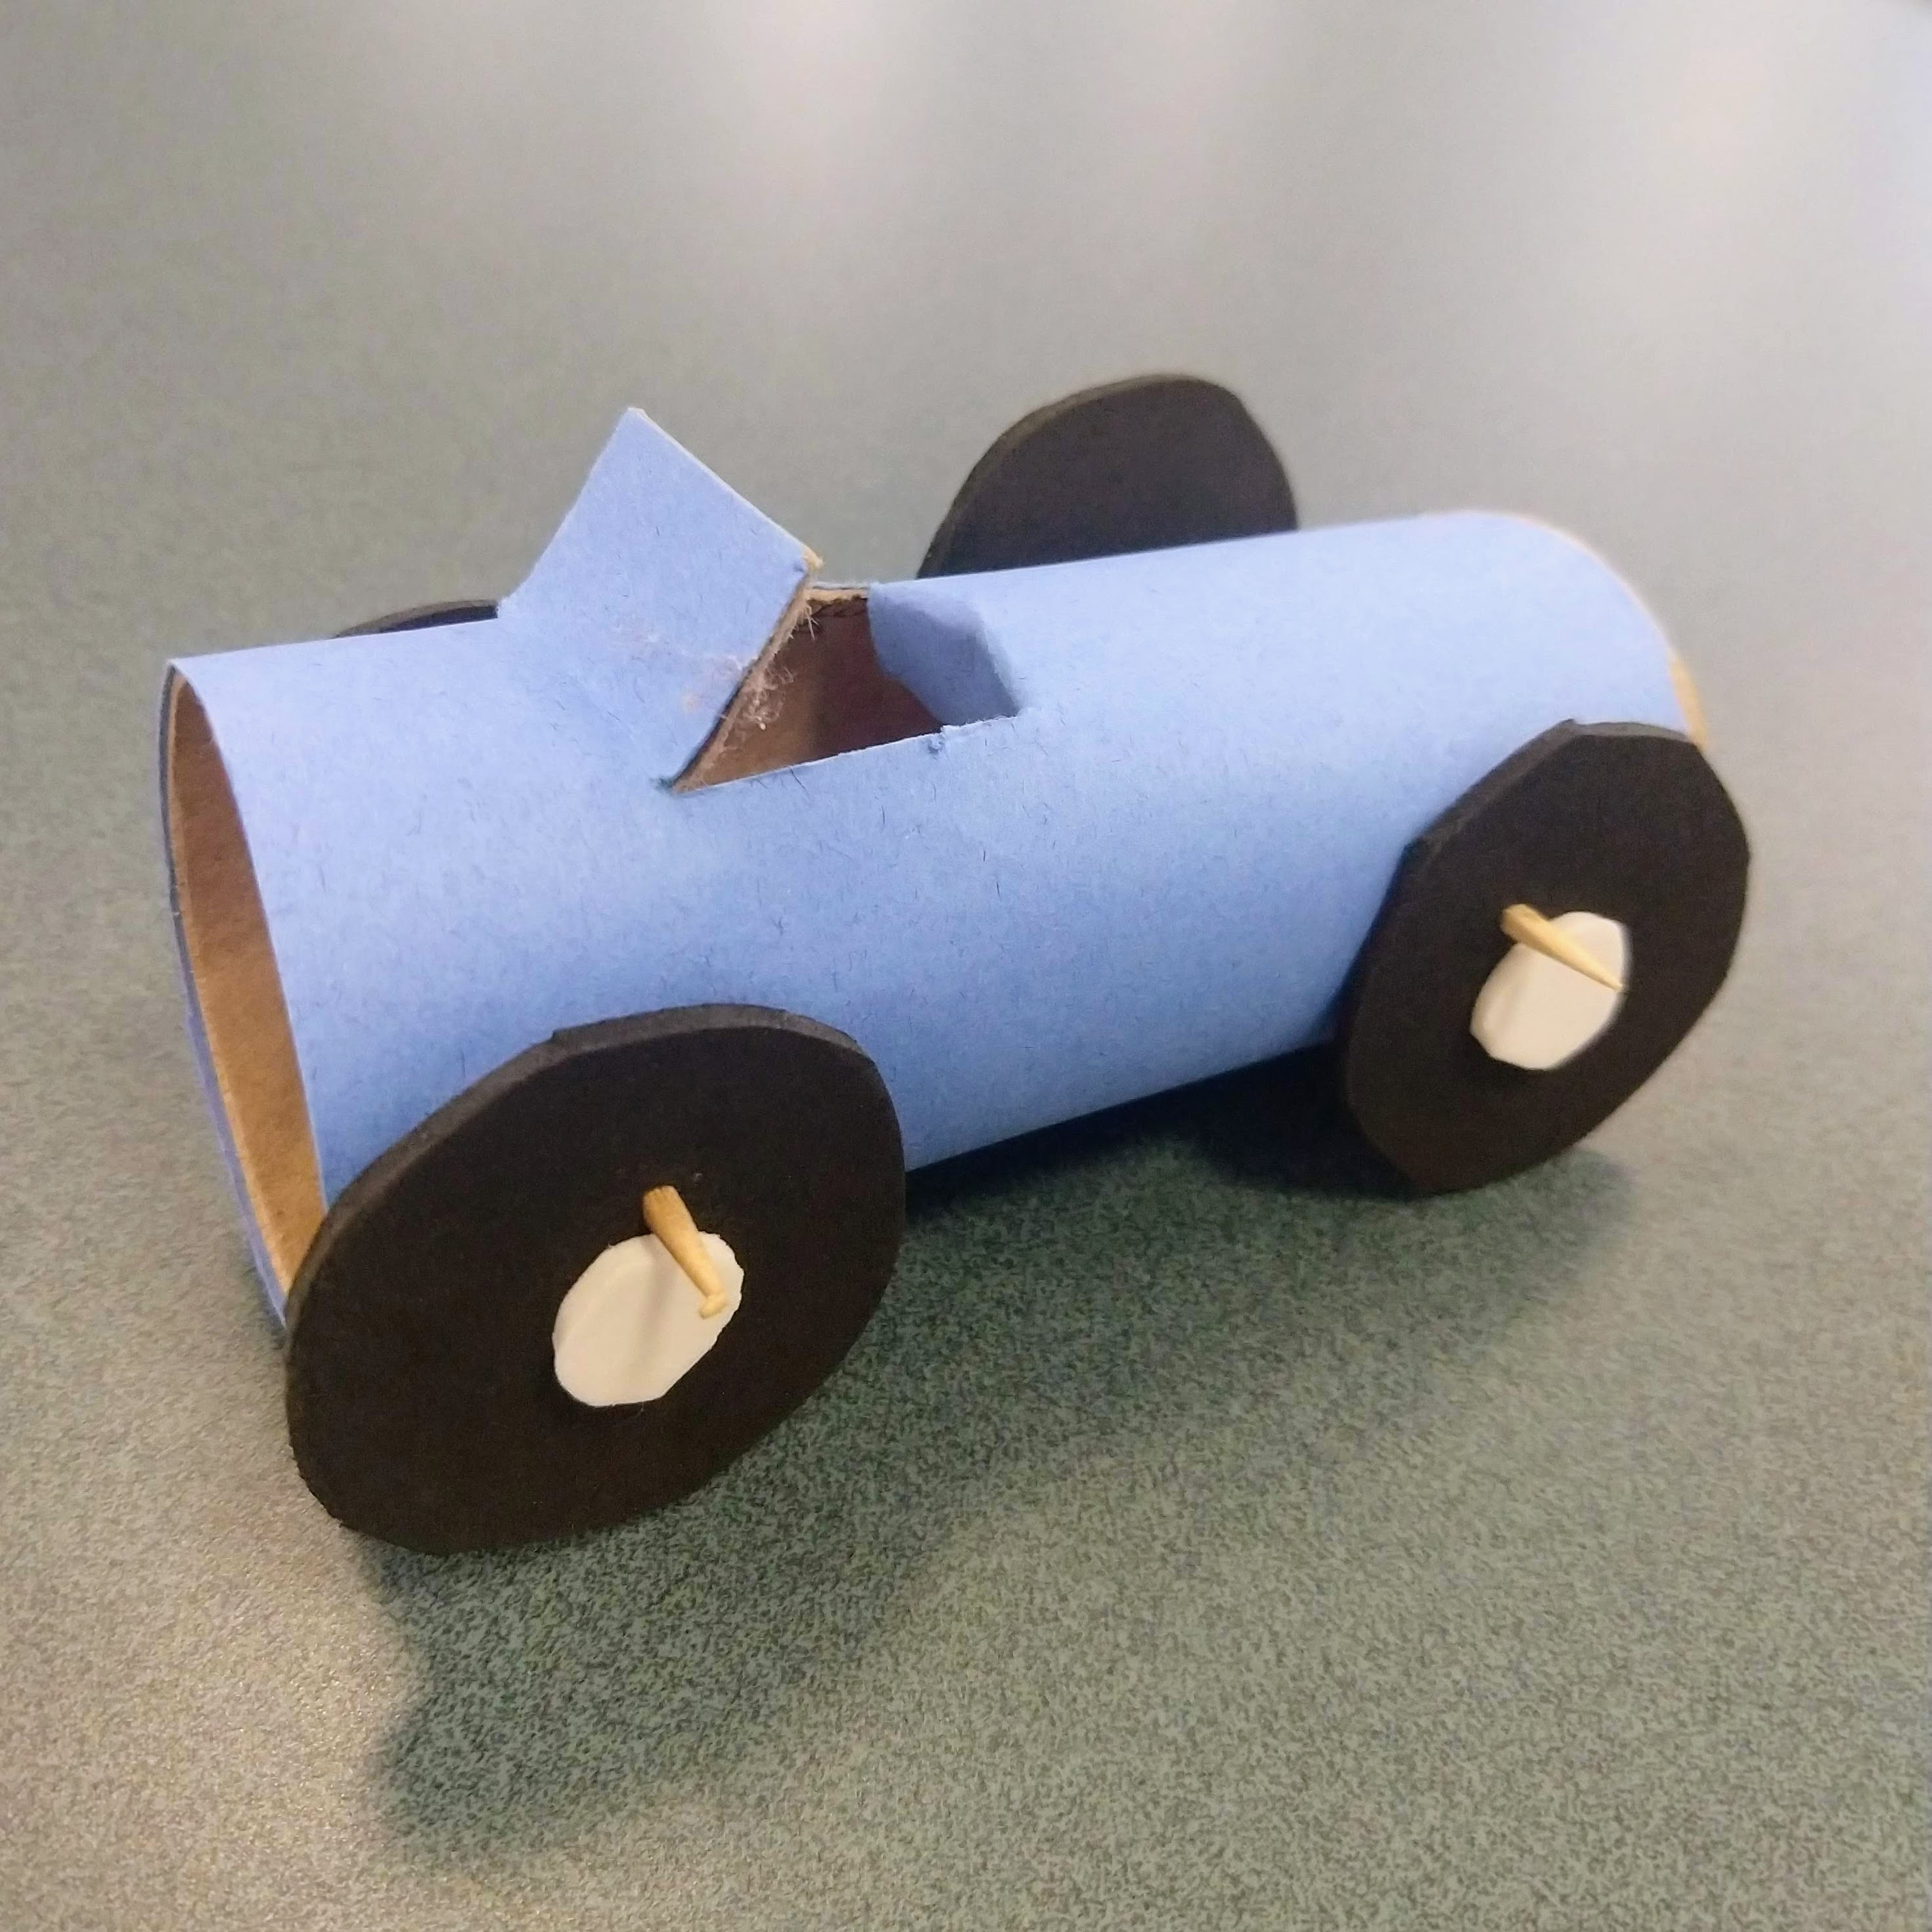 Summer Crafts on Zoom - TP Tube Cars (Ages 6+)